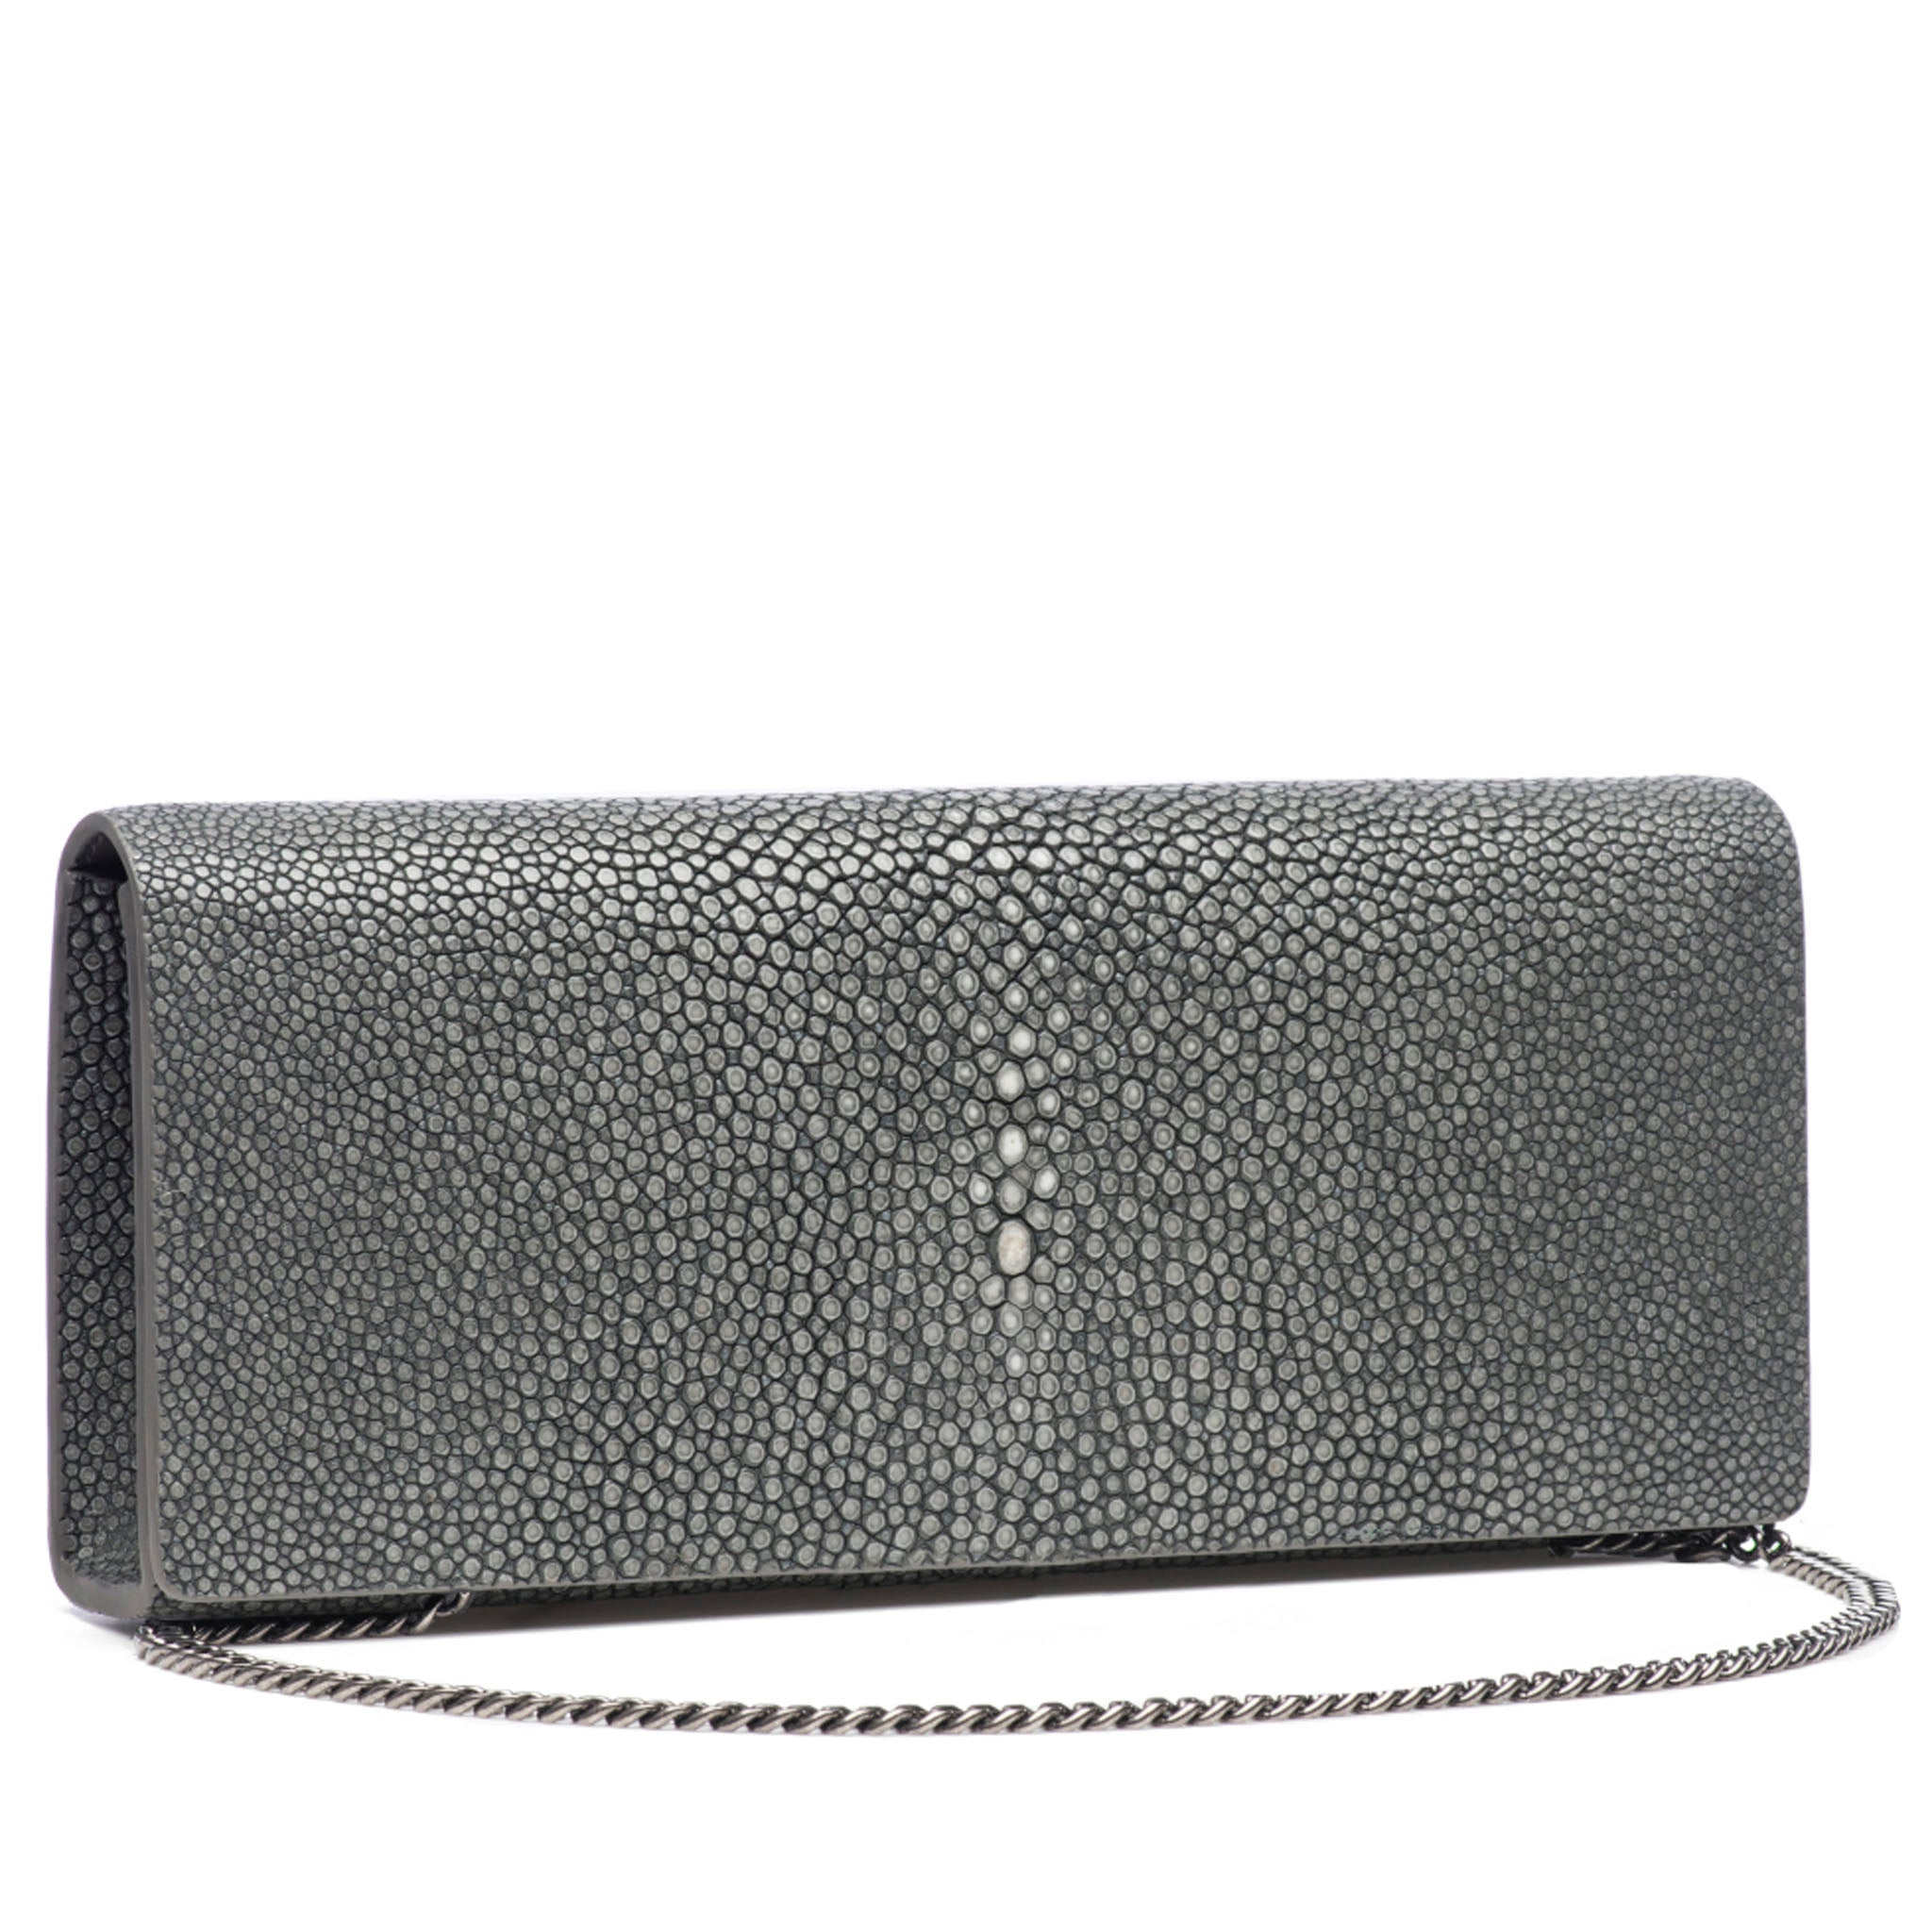 Gray Shagreen Clutch Bag Front View With Chain Cleo - Vivo Direct